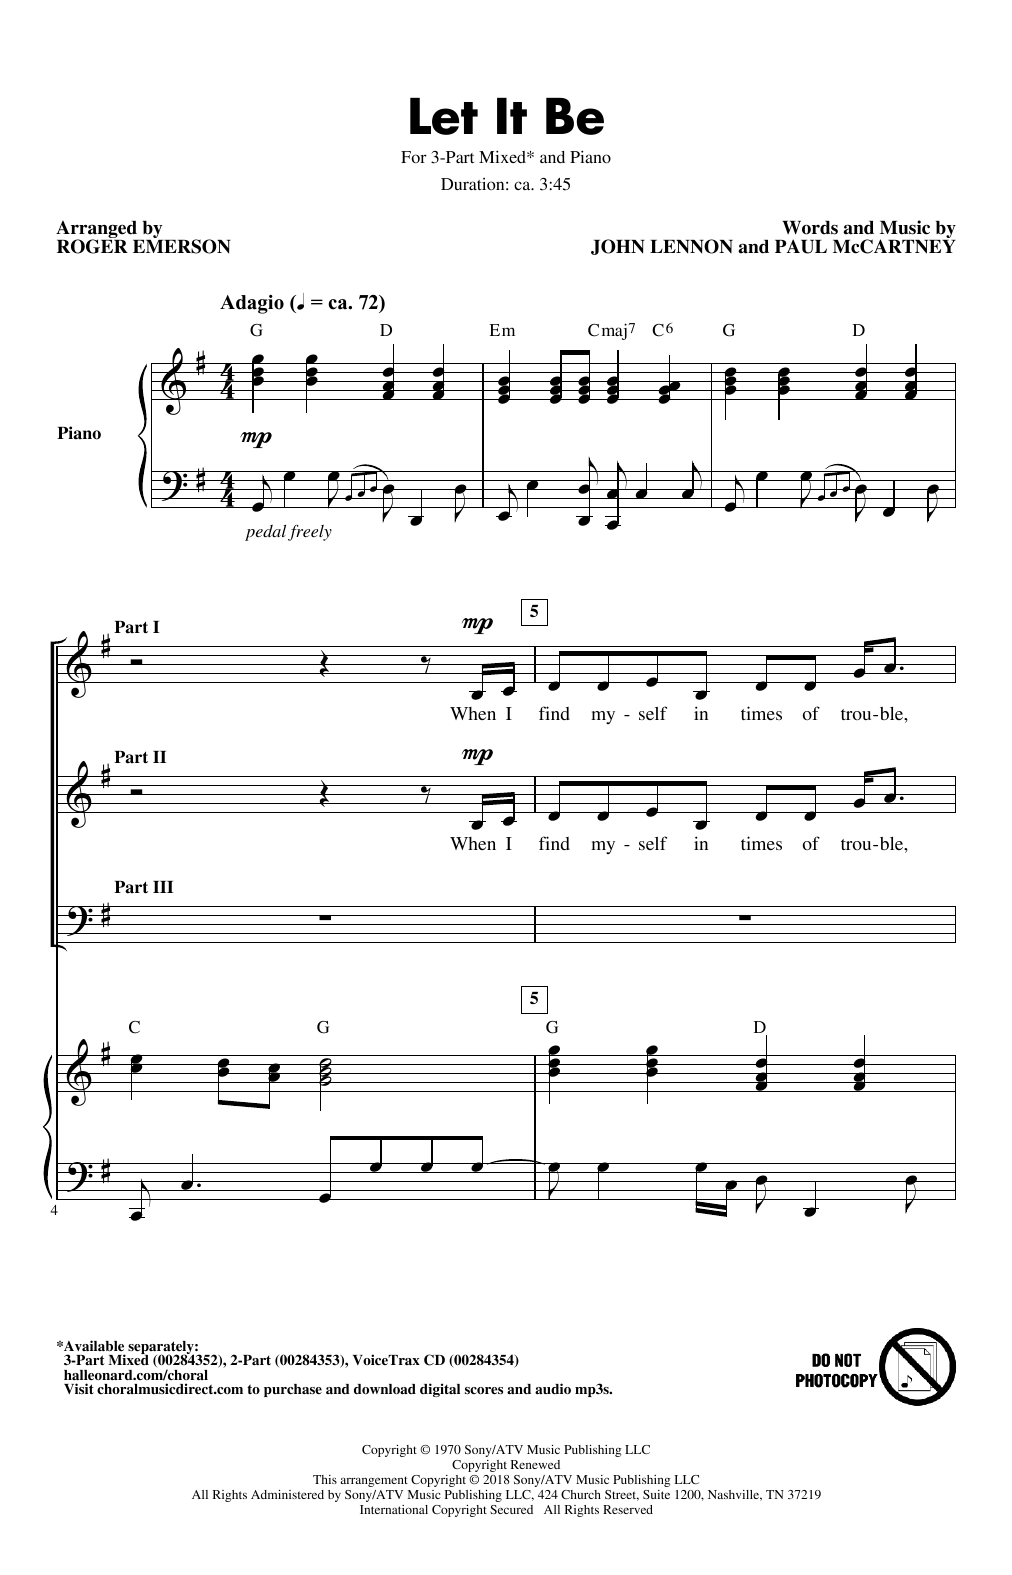 Let It Be (arr. Roger Emerson) (3-Part Mixed Choir)